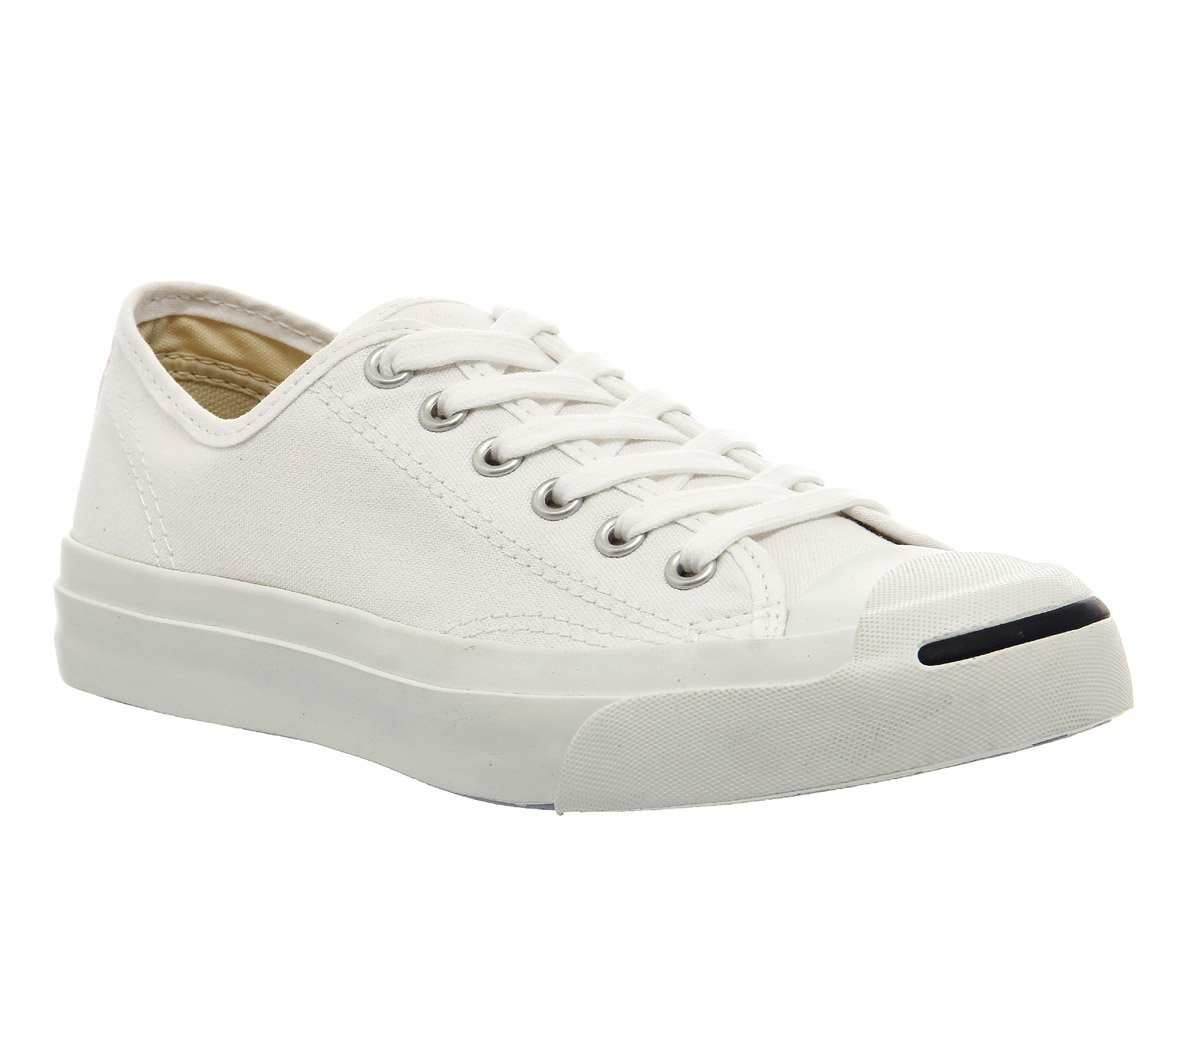 Converse Women's Jack Purcell Cp Canvas Low Top B000B2JTD6 6.5 M US Women / 5 M US Men|White/White